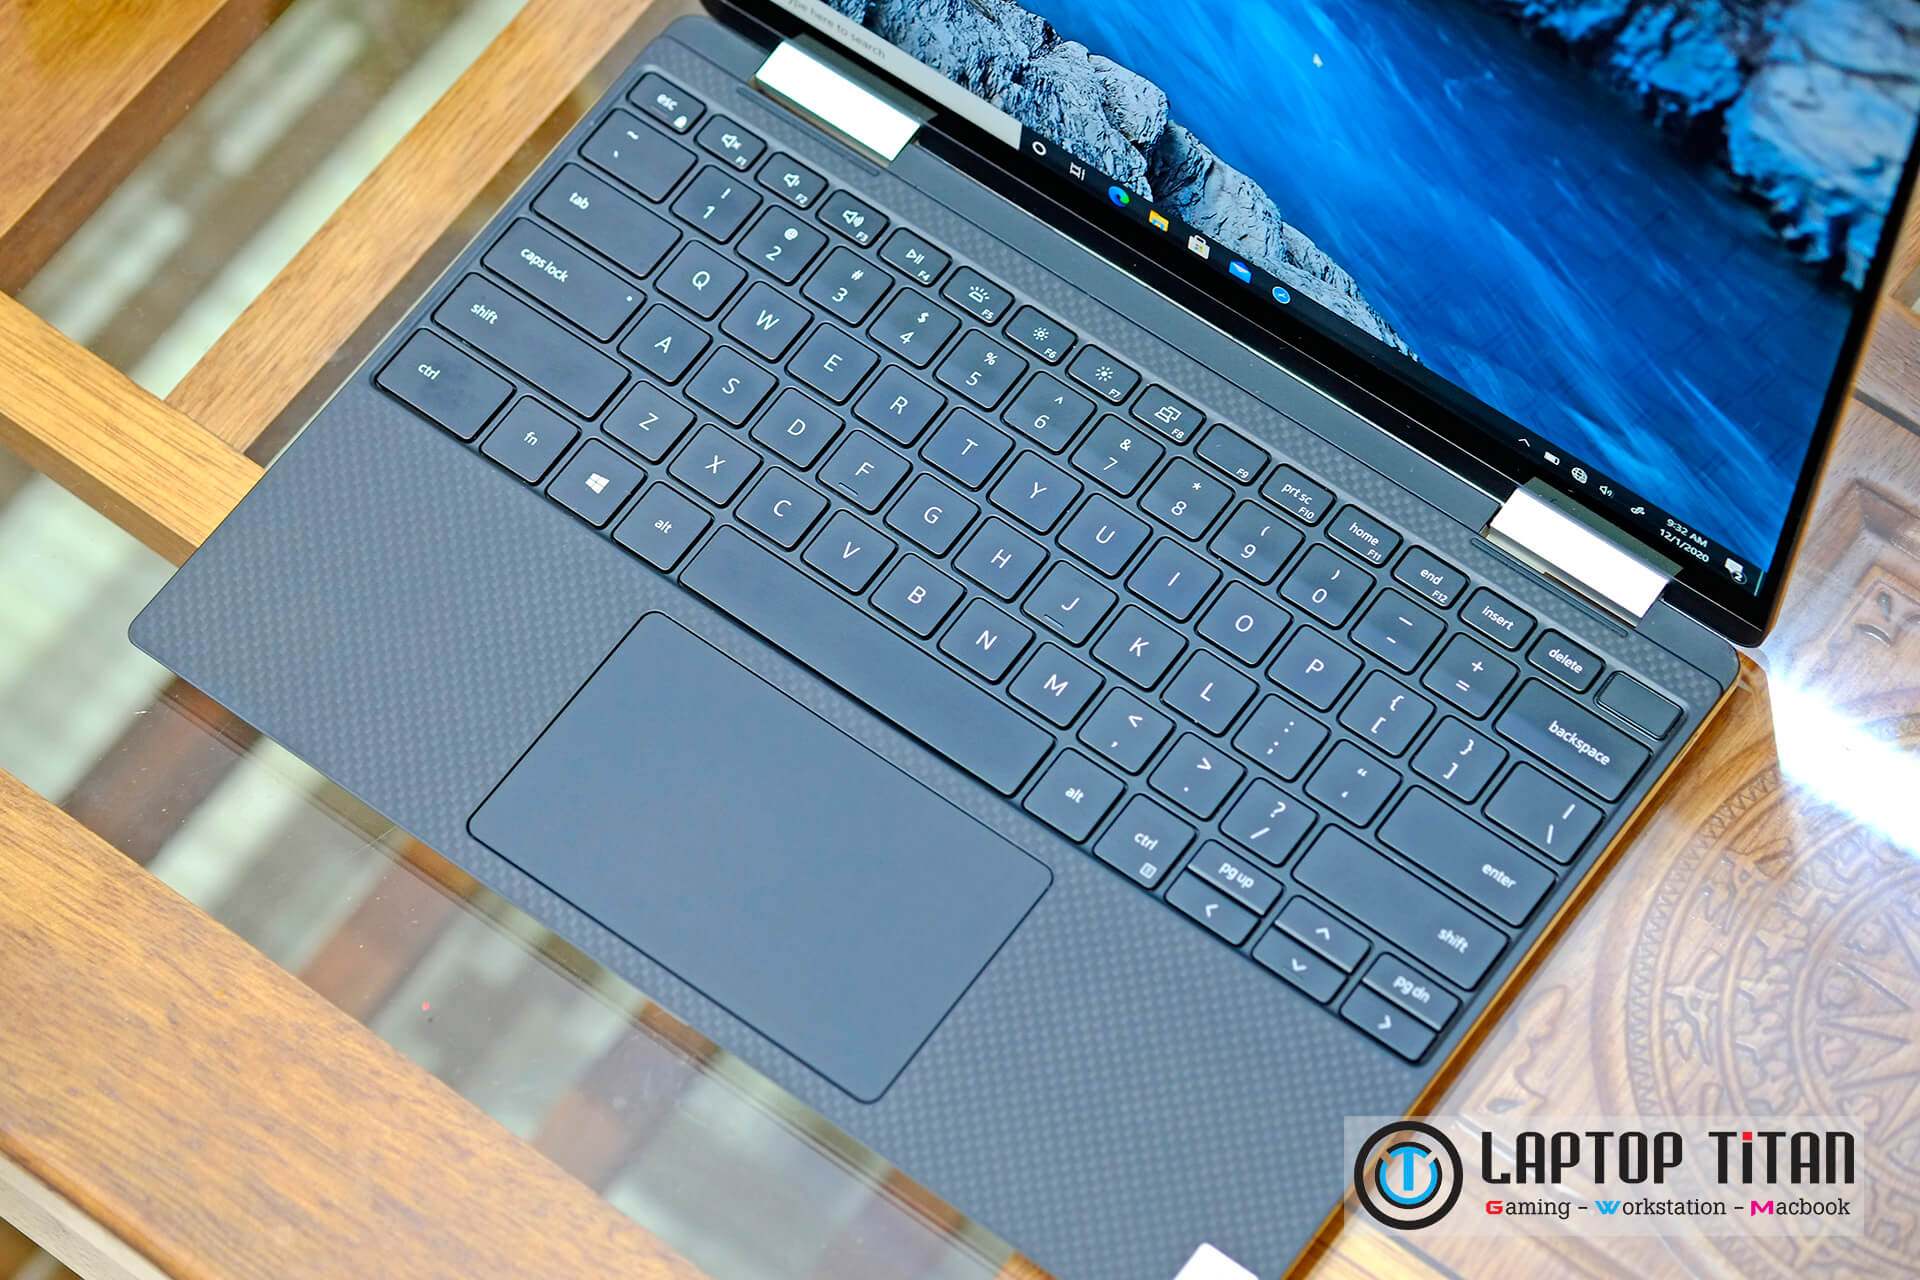 Dell XPS 13 7390 2 in 1 FHD Black Laptop Titan 03